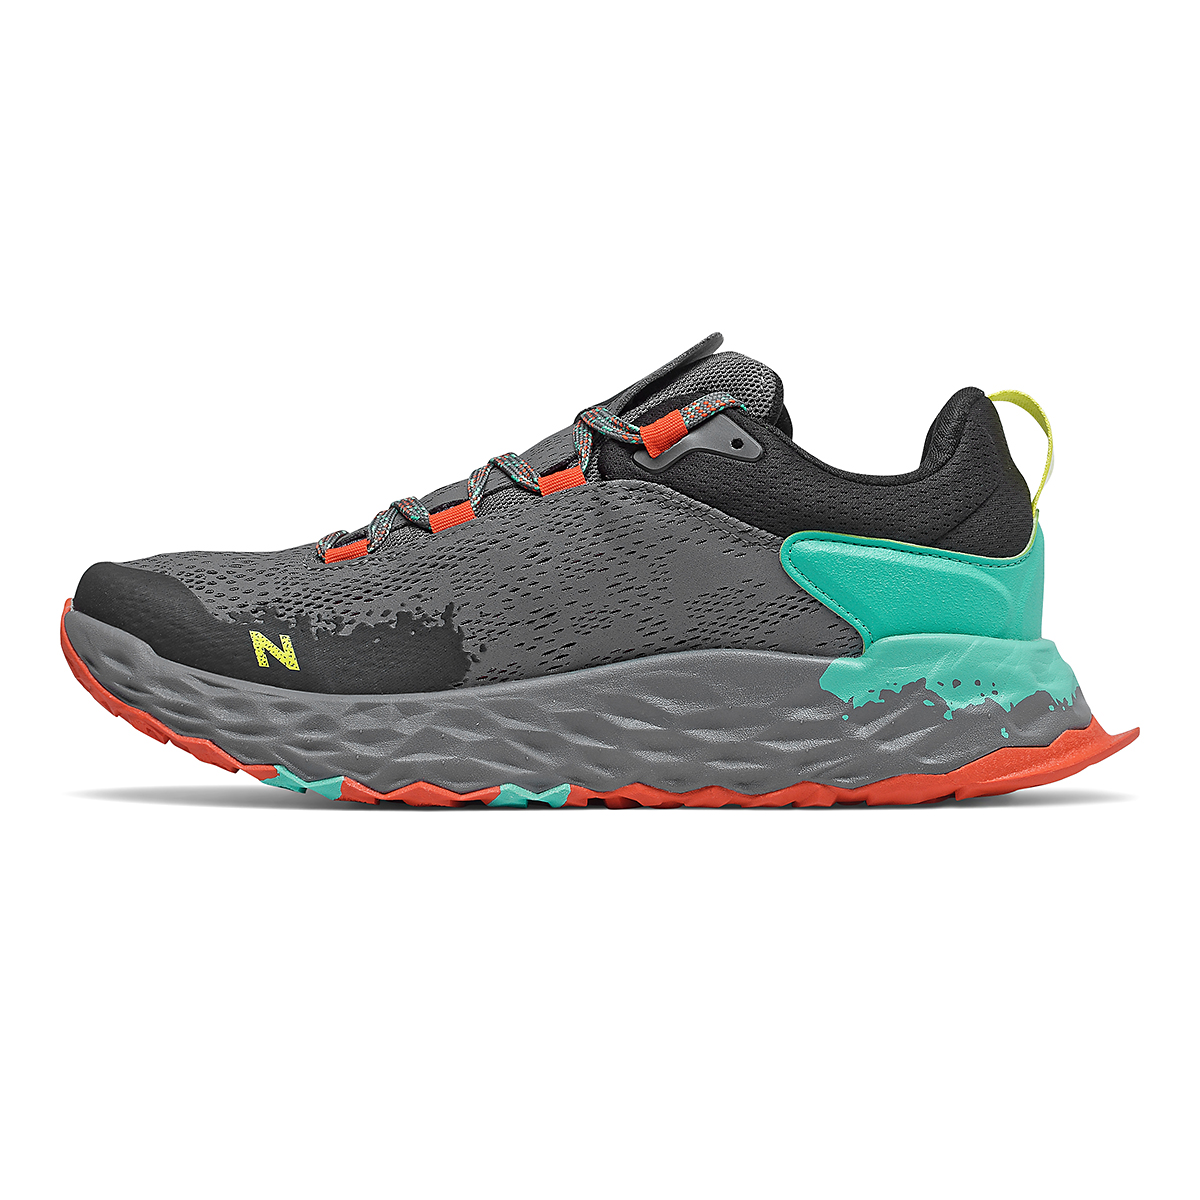 Men's New Balance Hierro V5 Trail Running Shoe - Color: Lead - Size: 4.5 - Width: Wide, Lead, large, image 2